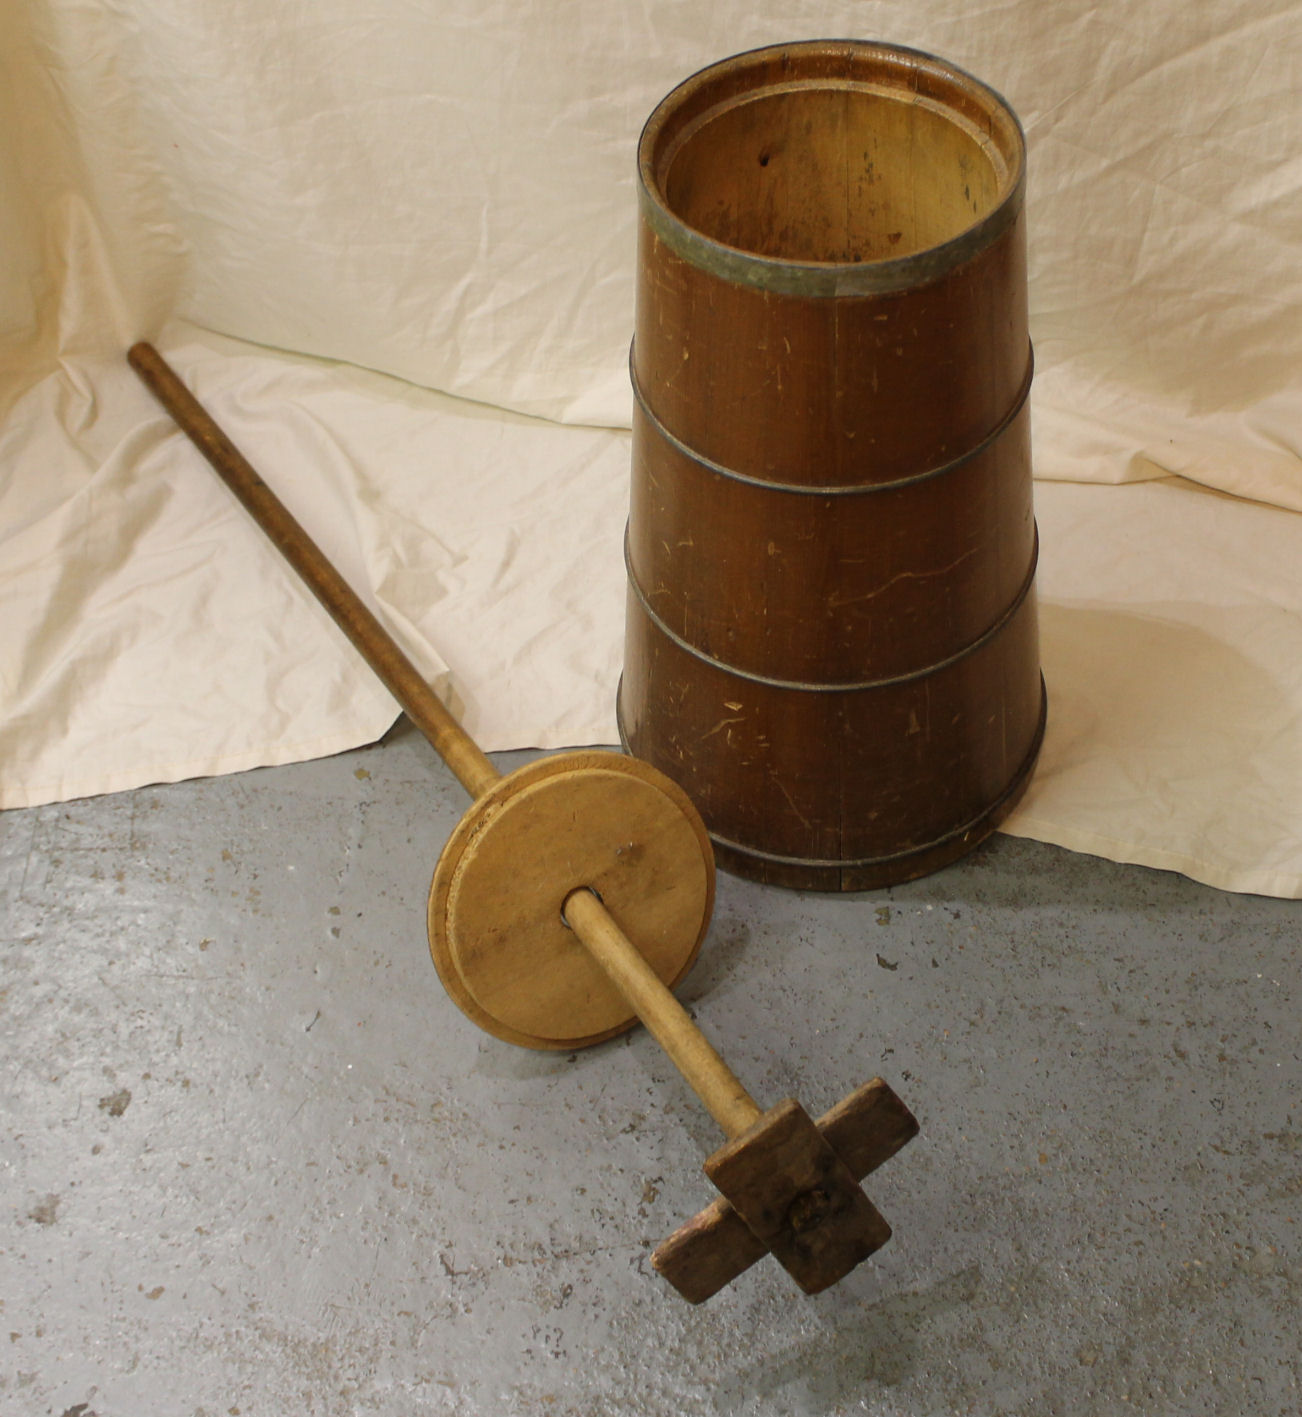 Bargain Johns Antiques   Antique Wooden Butter Churn with